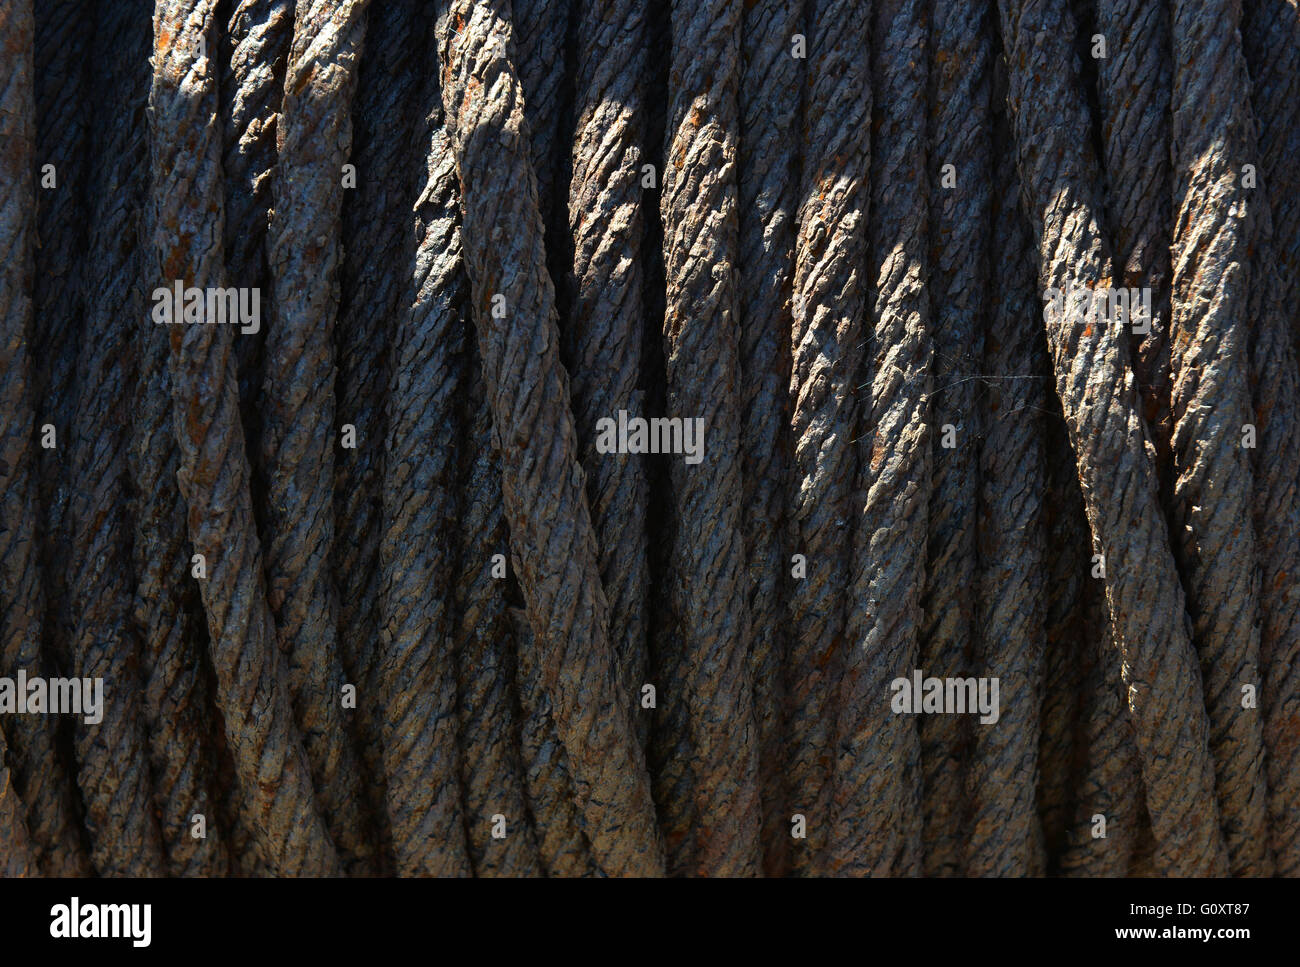 Rusty metal rope on old boat winch - Stock Image